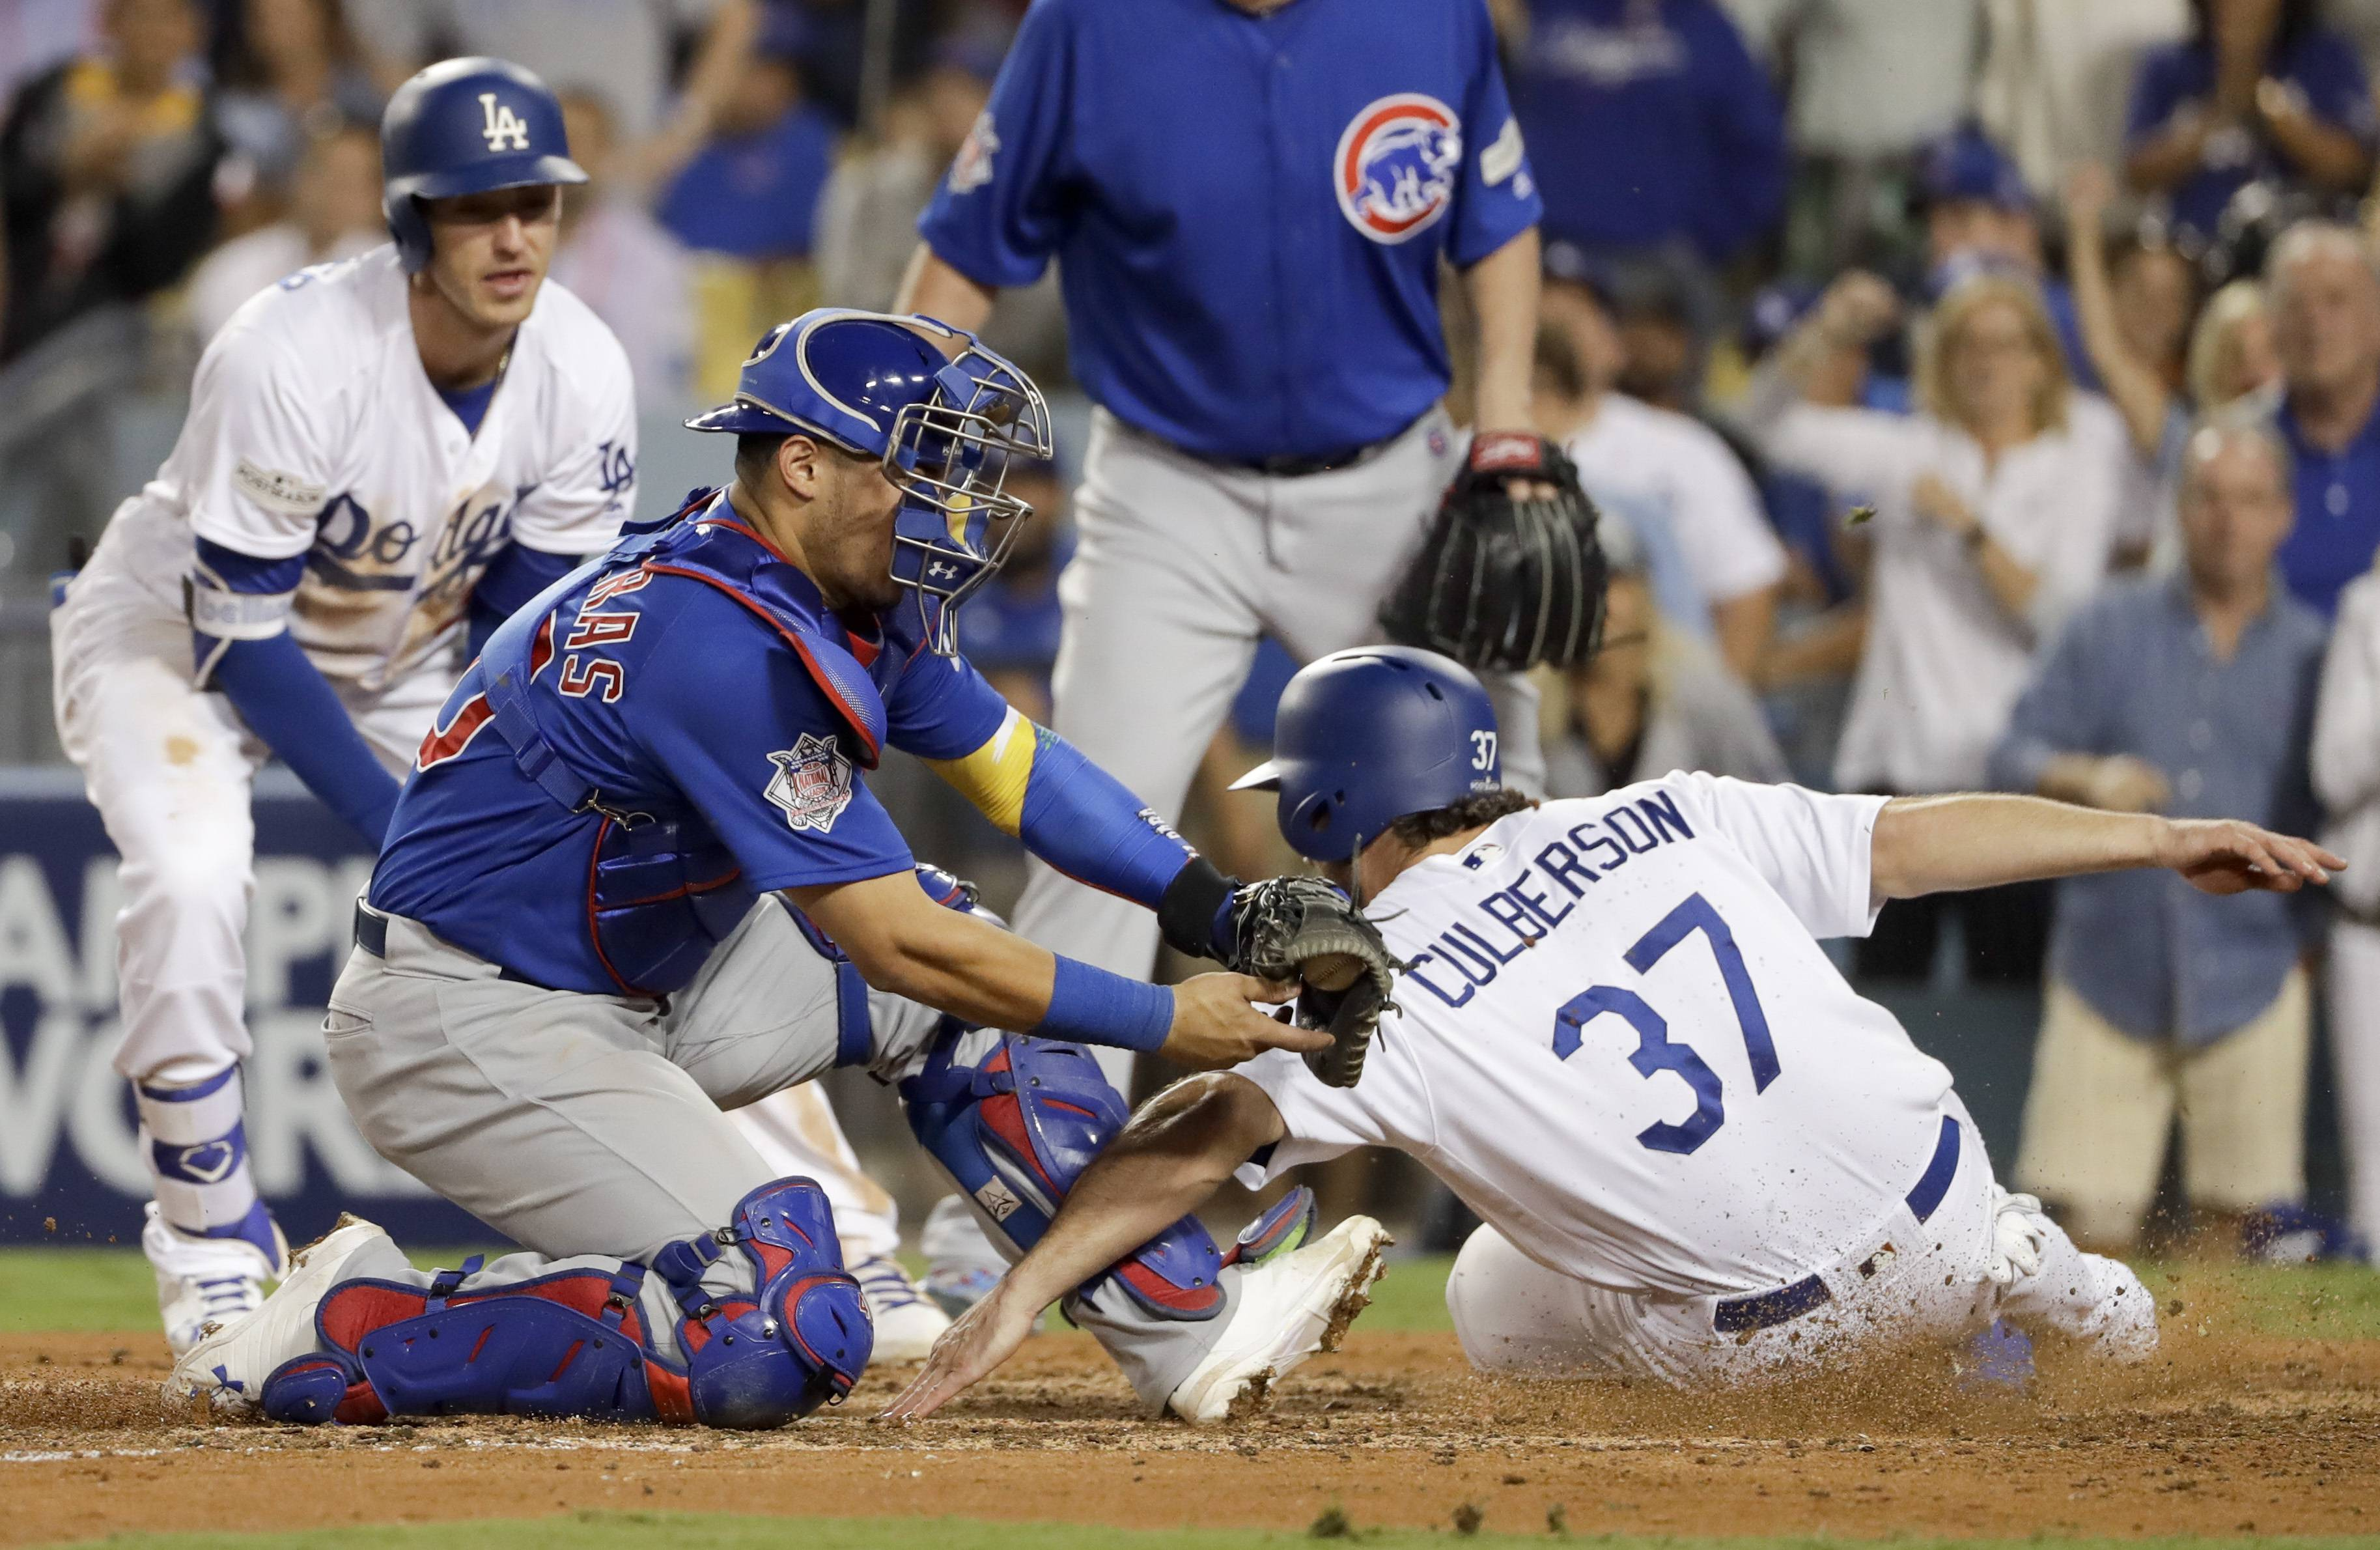 Los Angeles Dodgers' Charlie Culberson (37) is called safe at home past Chicago Cubs catcher Willson Contreras during the seventh inning of Game 1 of baseball's National League Championship Series in Los Angeles, Saturday, Oct. 14, 2017.